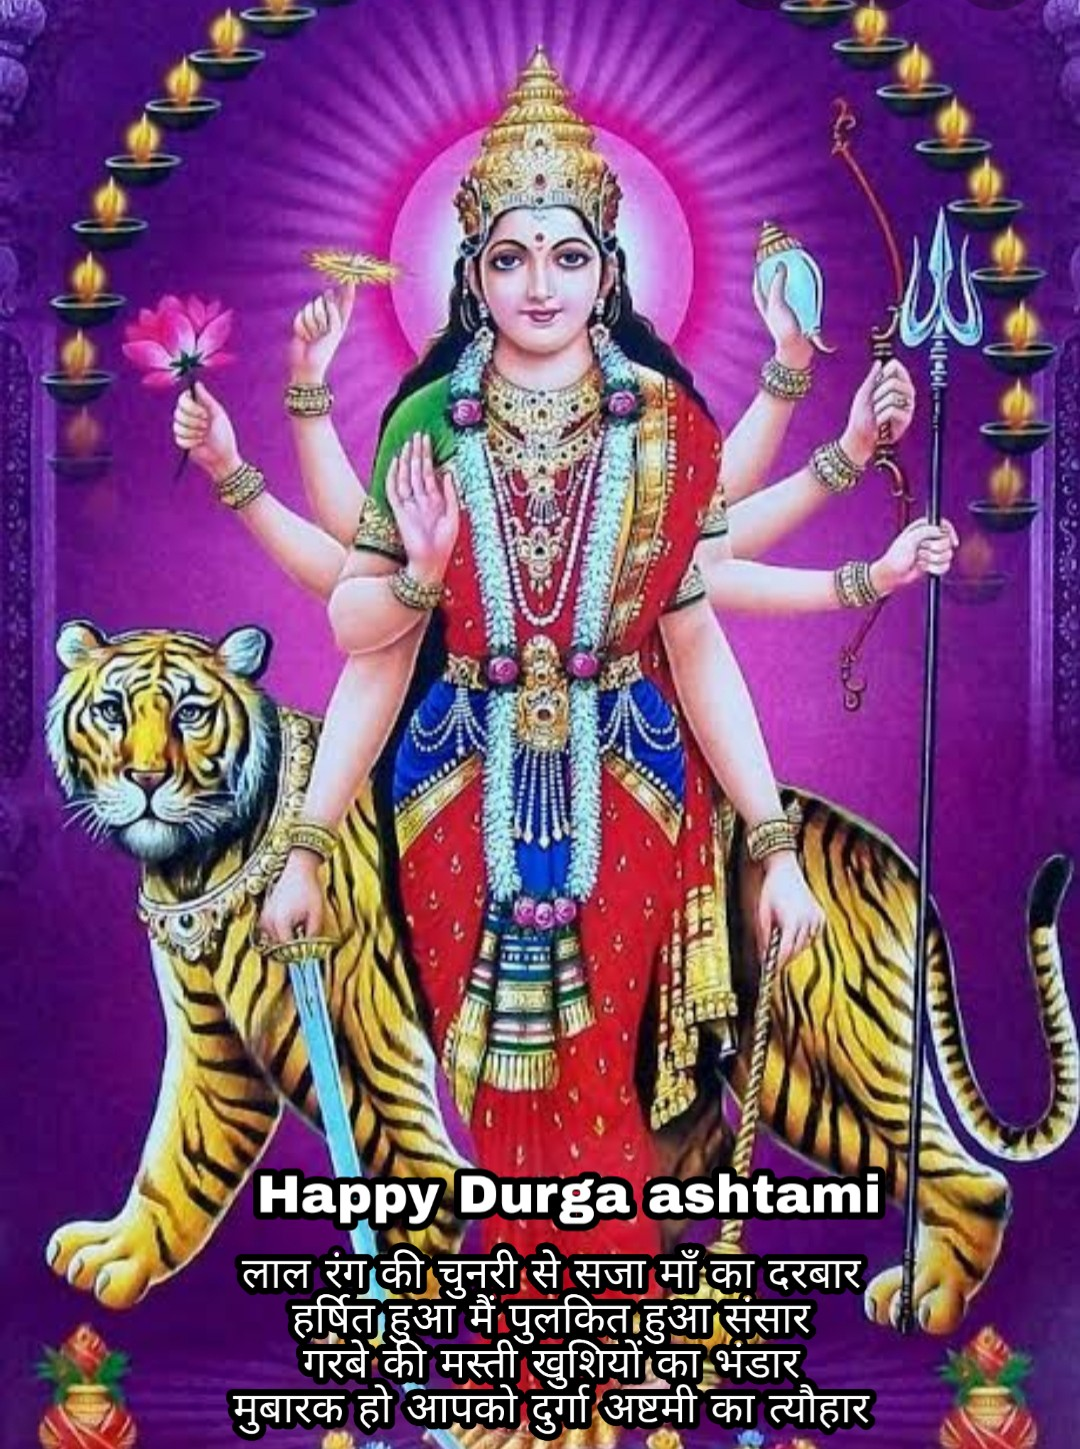 Photo of Durga ashtami wishes shayari quotes 2020